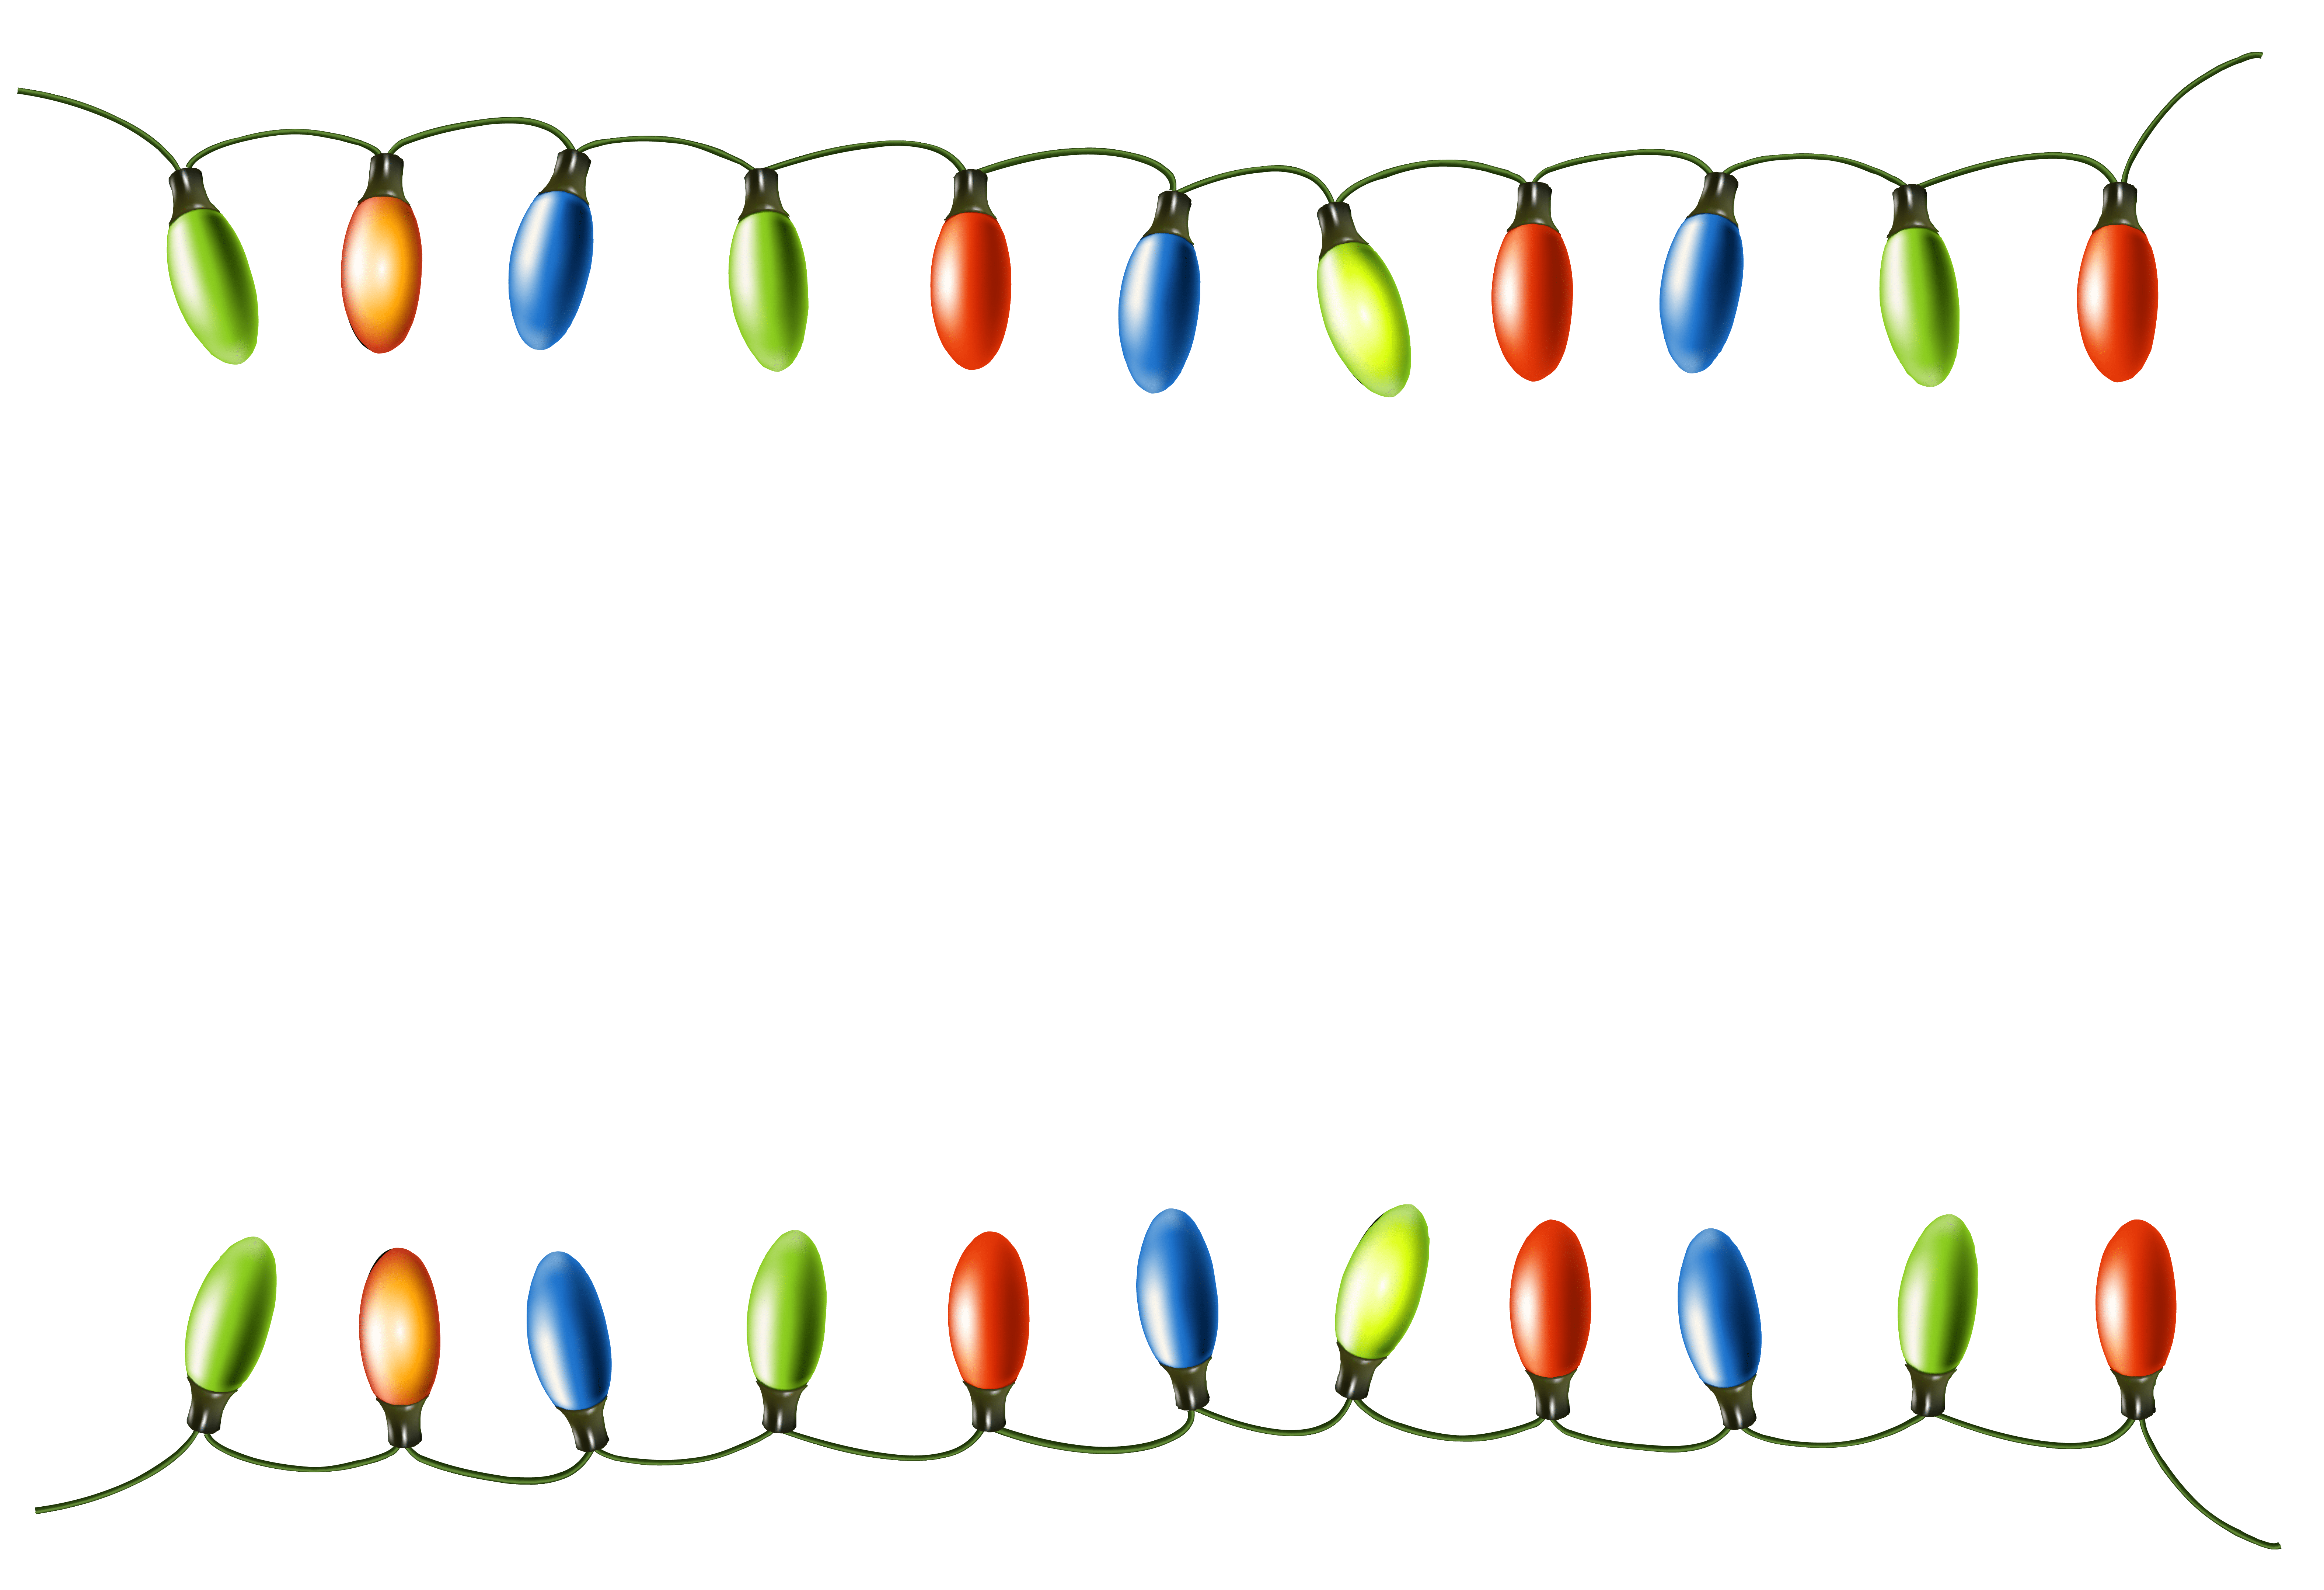 Tangled christmas lights clipart clipart royalty free stock Christmas Lights Border Clipart – Merry Christmas And Happy New Year ... clipart royalty free stock